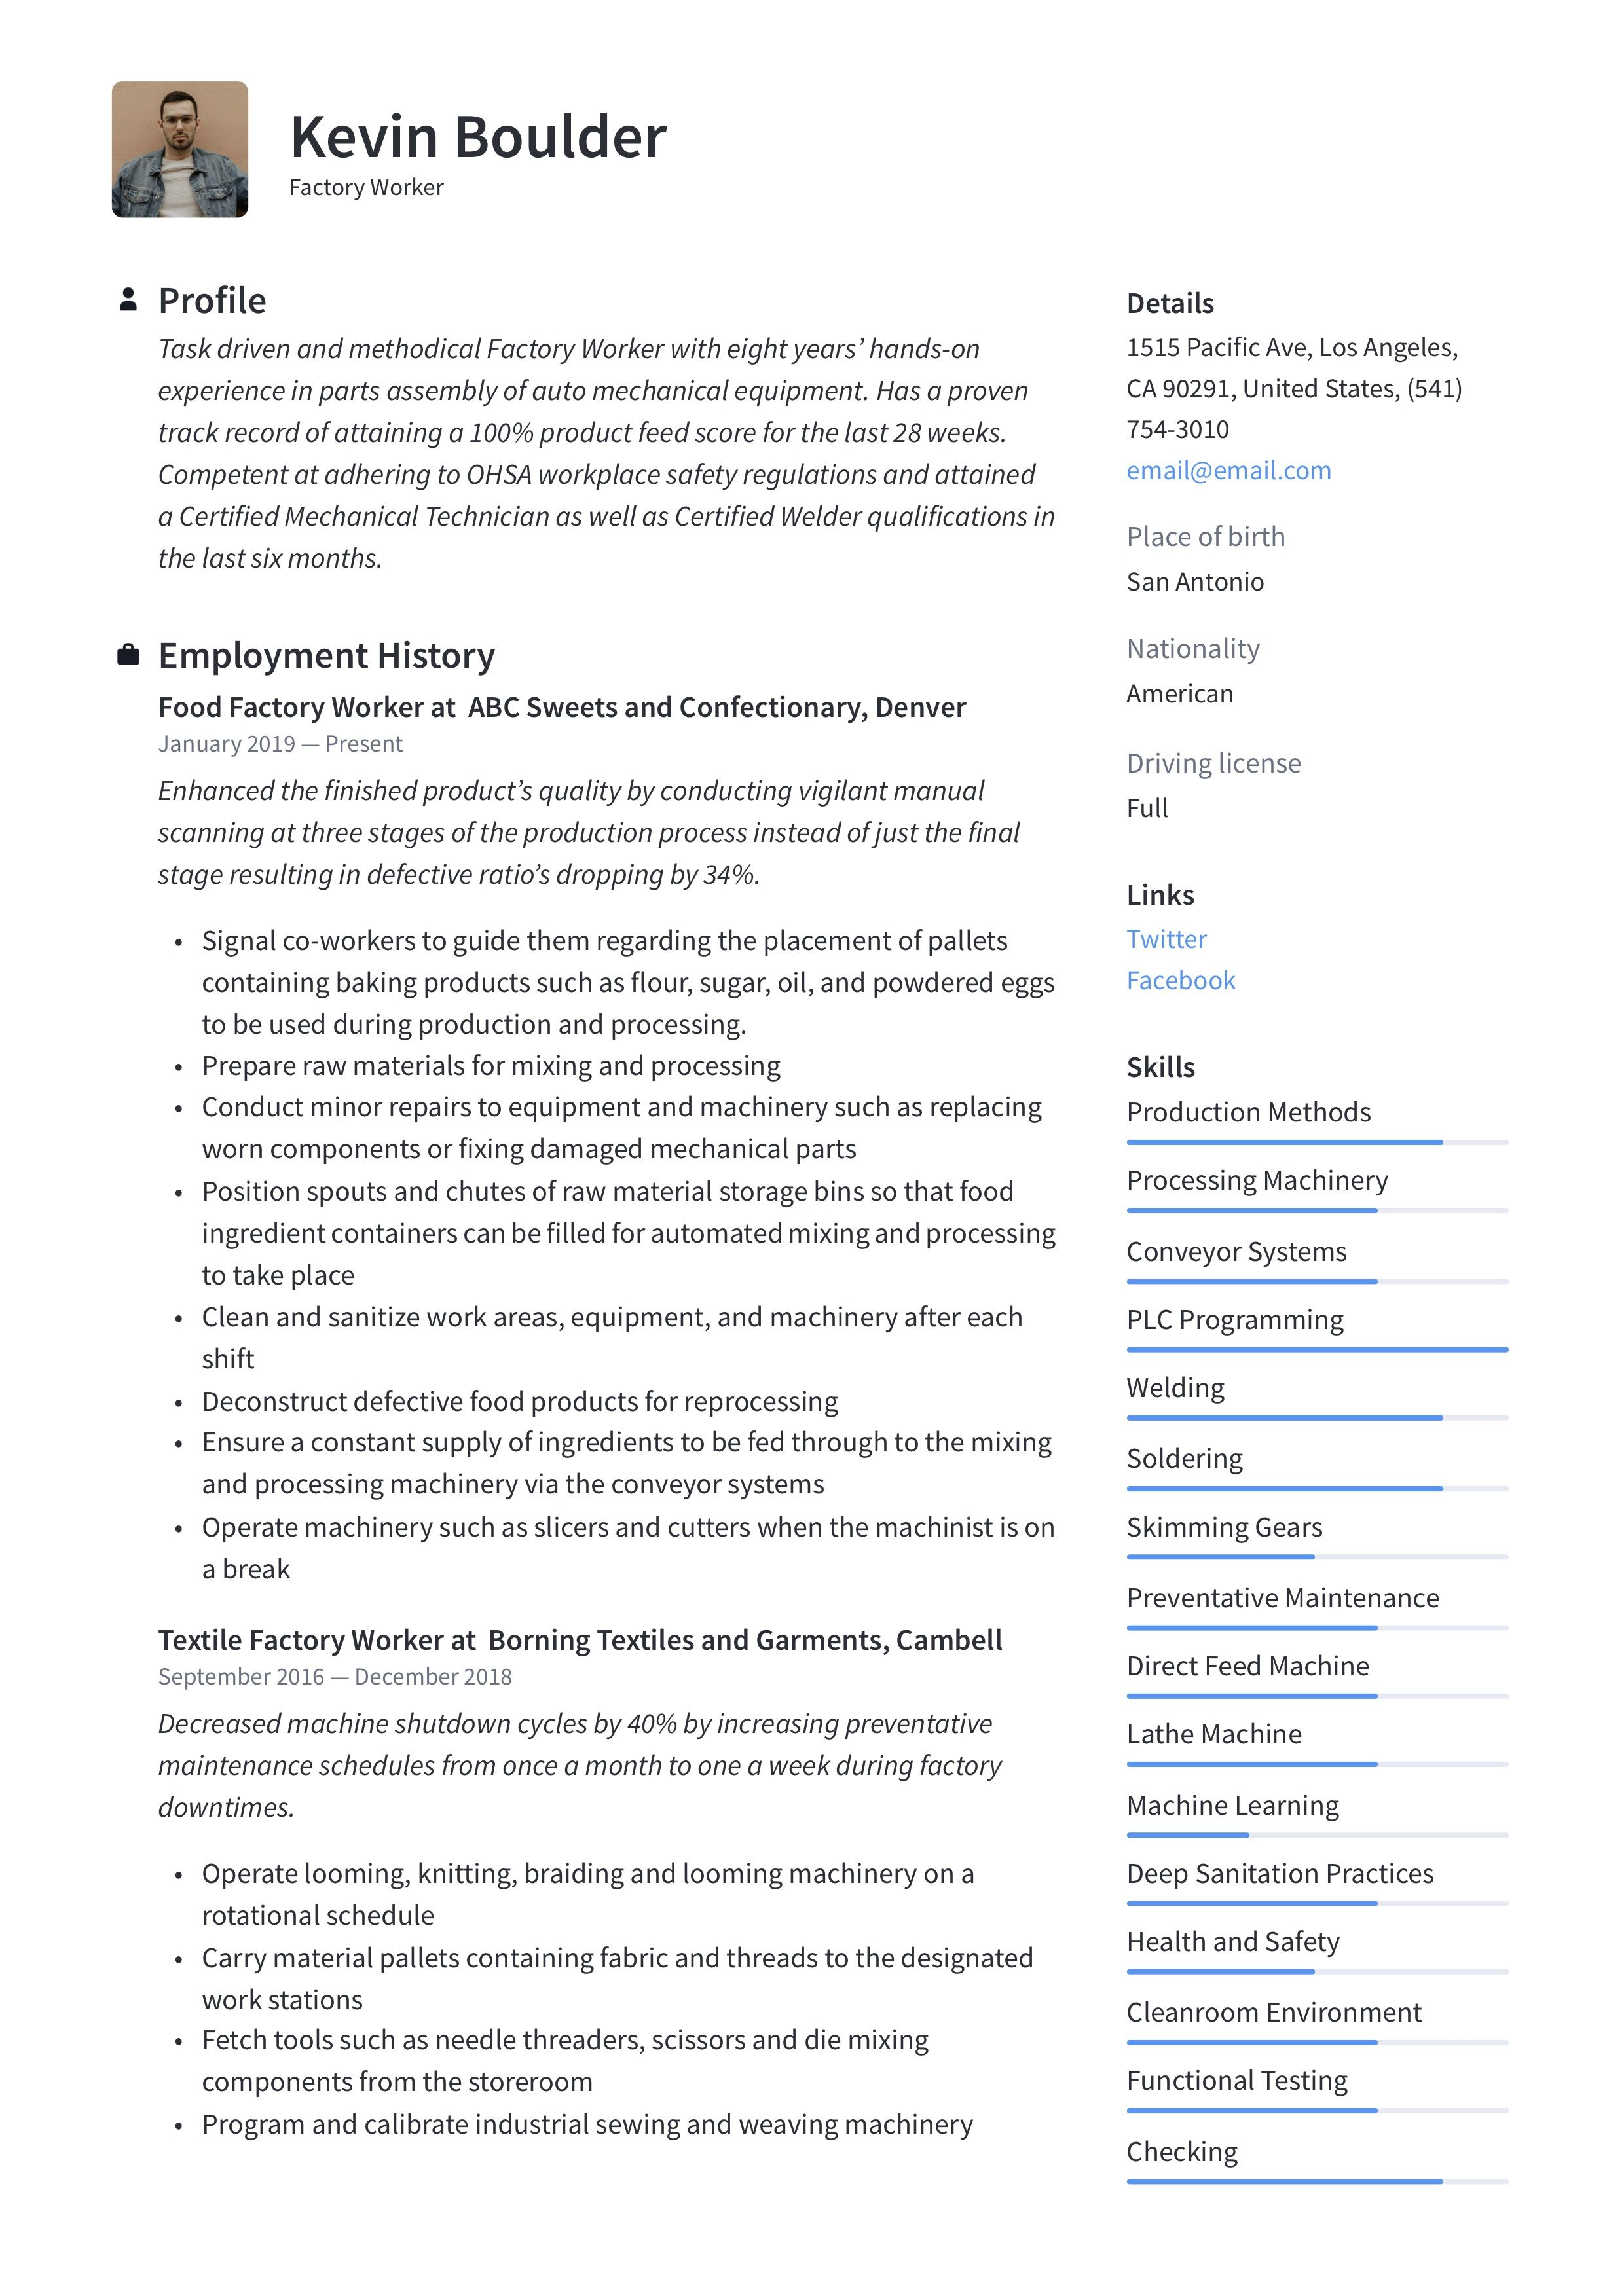 Factory Worker Resume & Writing Guide in 2020 Resume